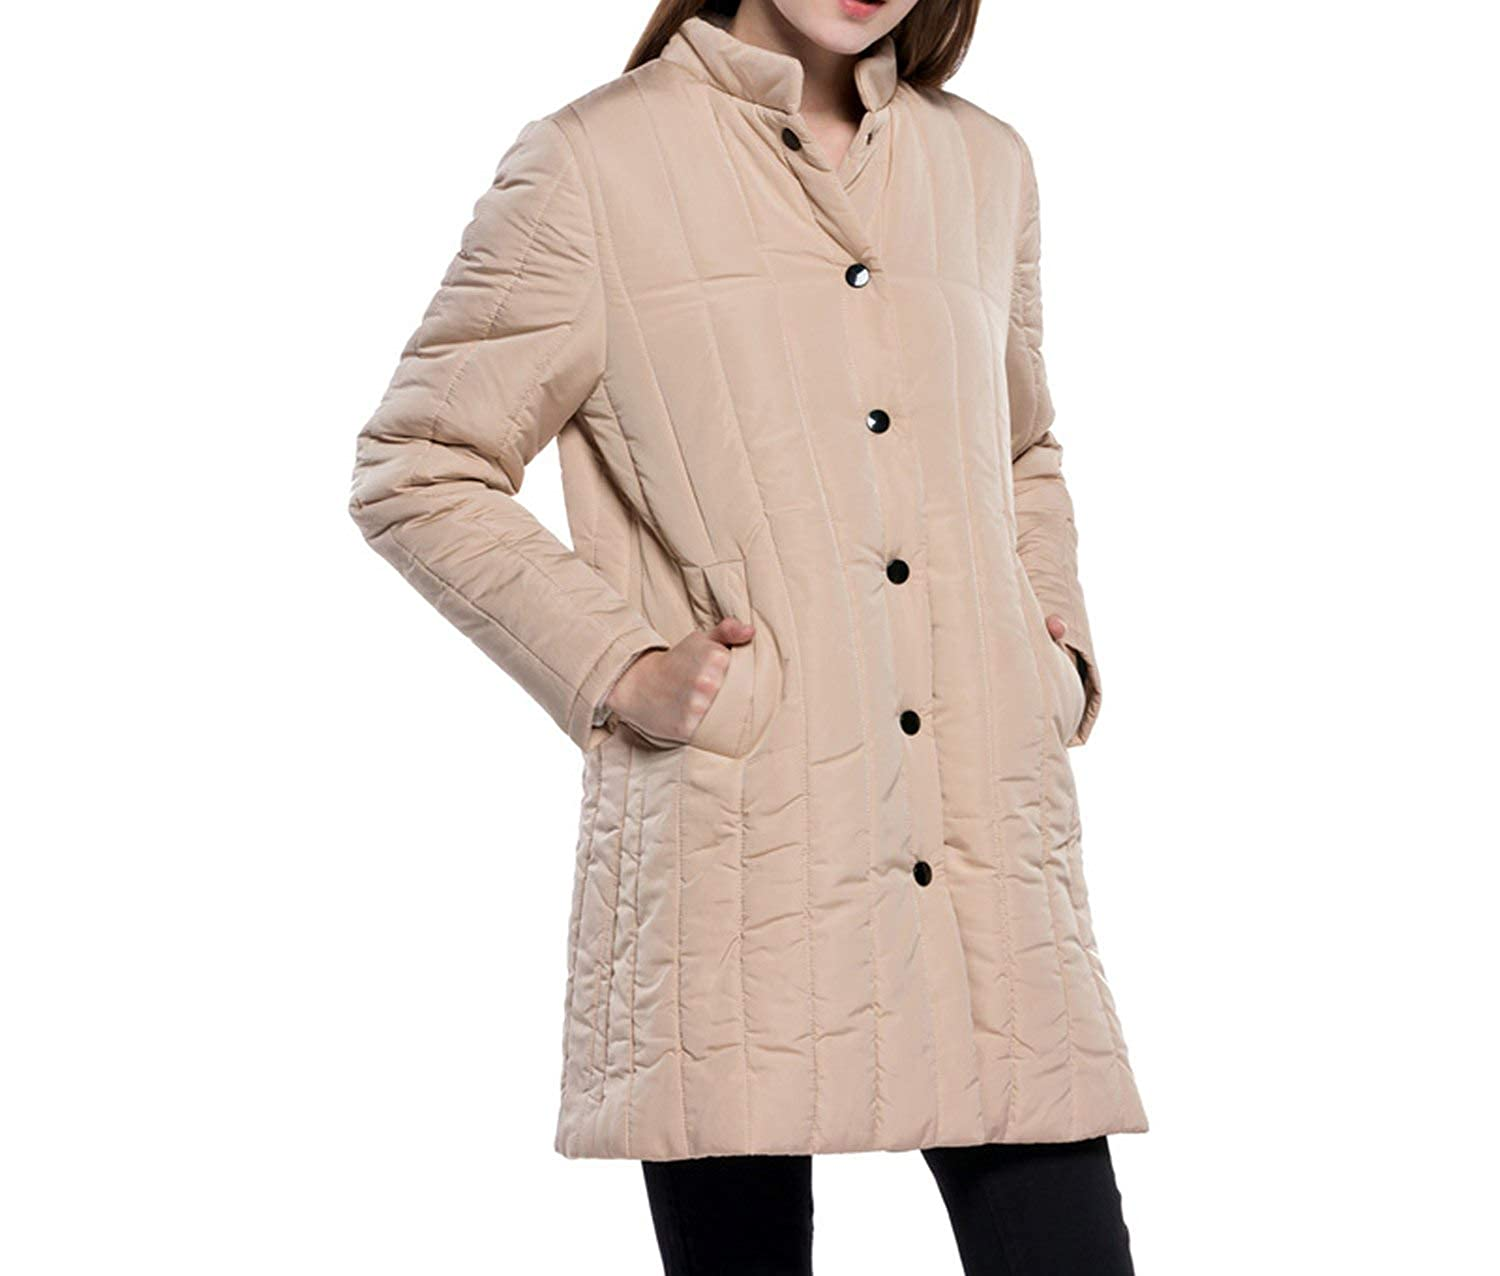 Amazon.com: Show-Show-Fashion outerwear-coats Wadded Winter ...